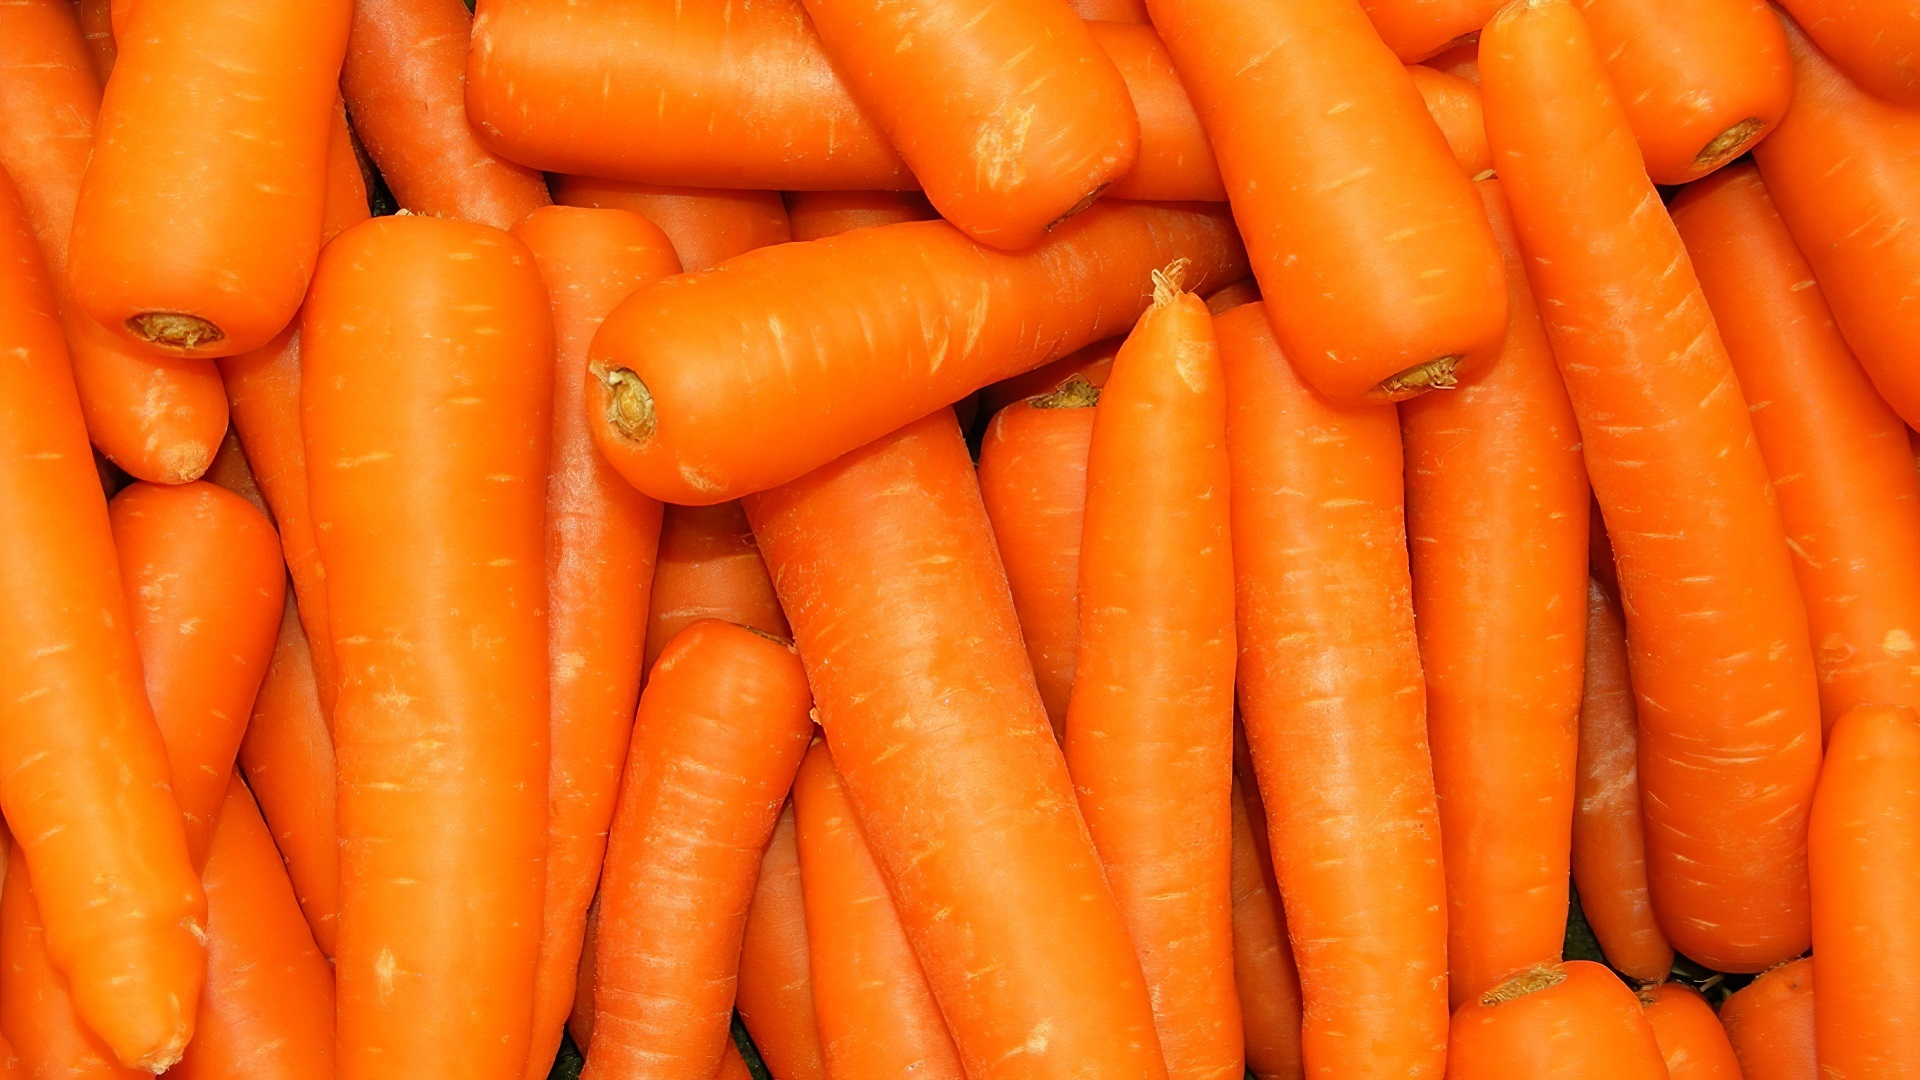 14 Carrot HD Wallpapers | Backgrounds - Wallpaper Abyss